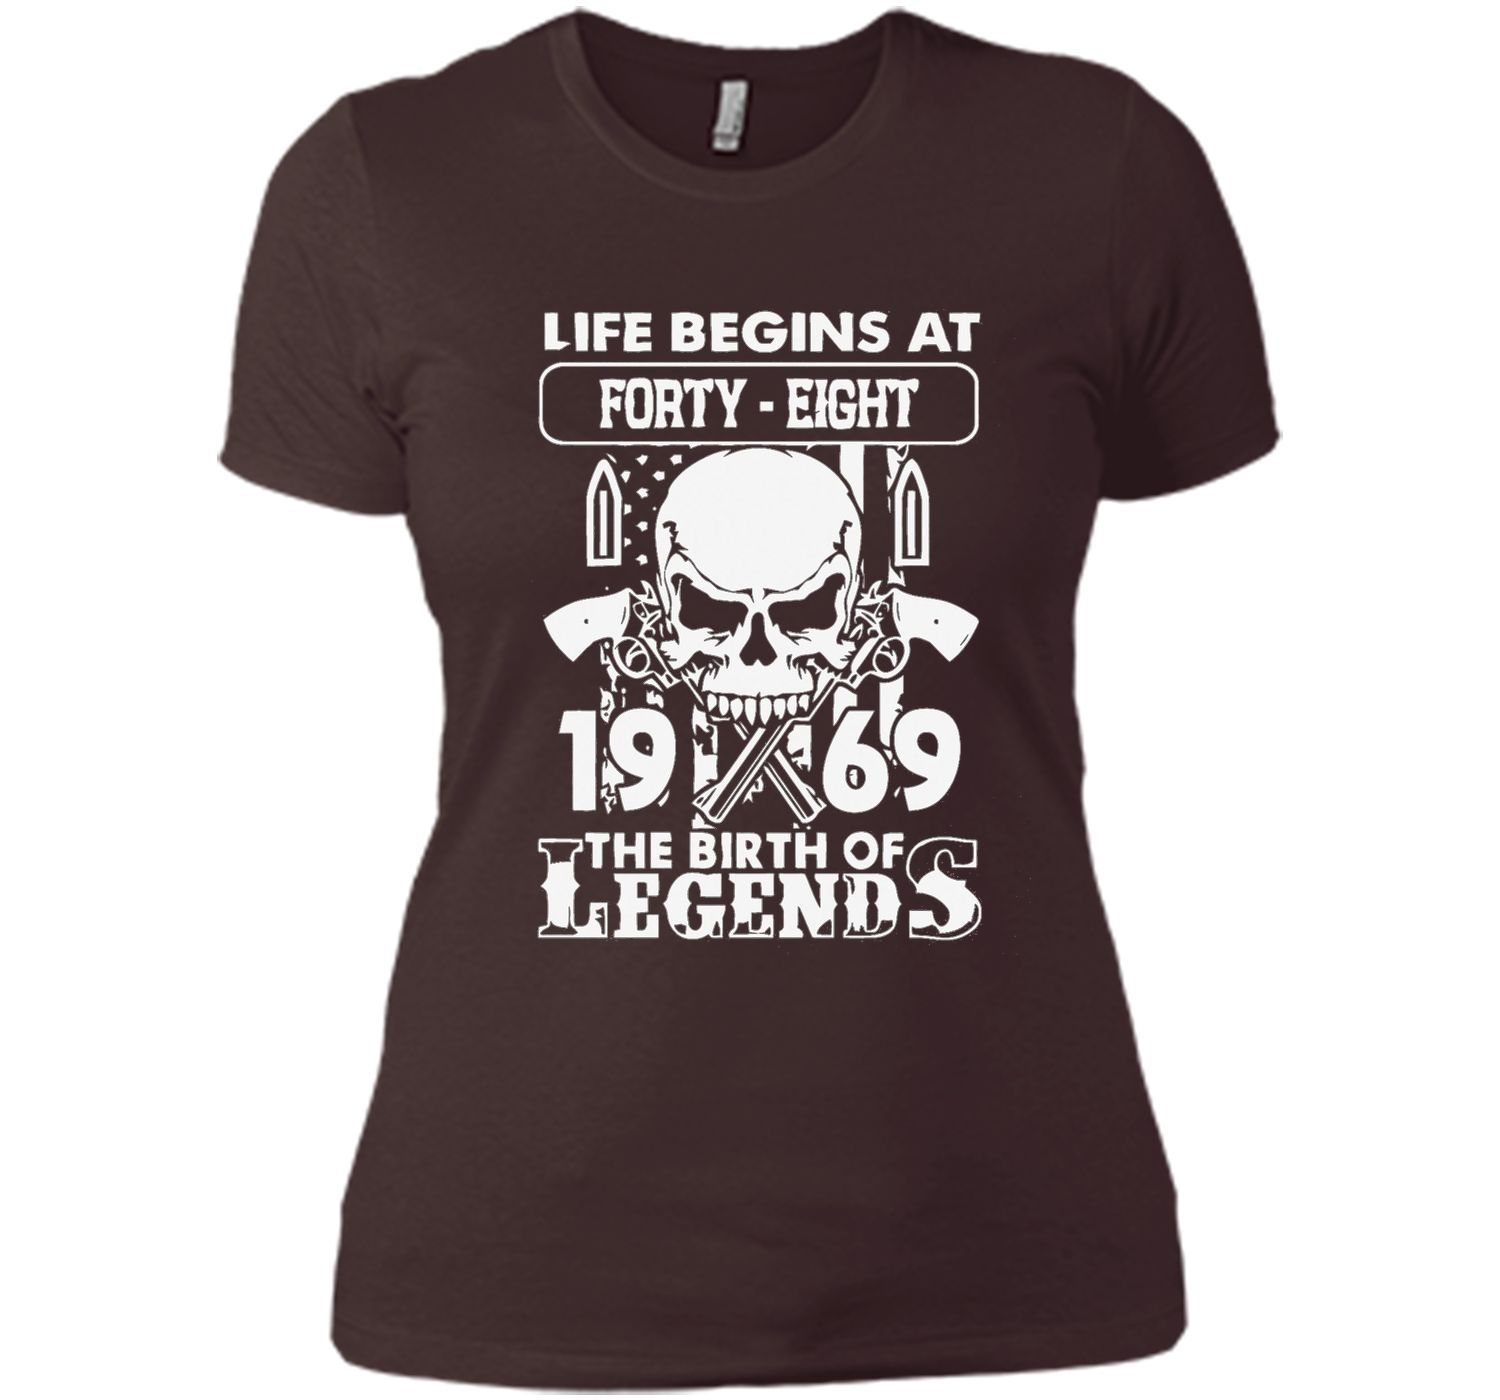 1969 the birth off legends xmas shirt